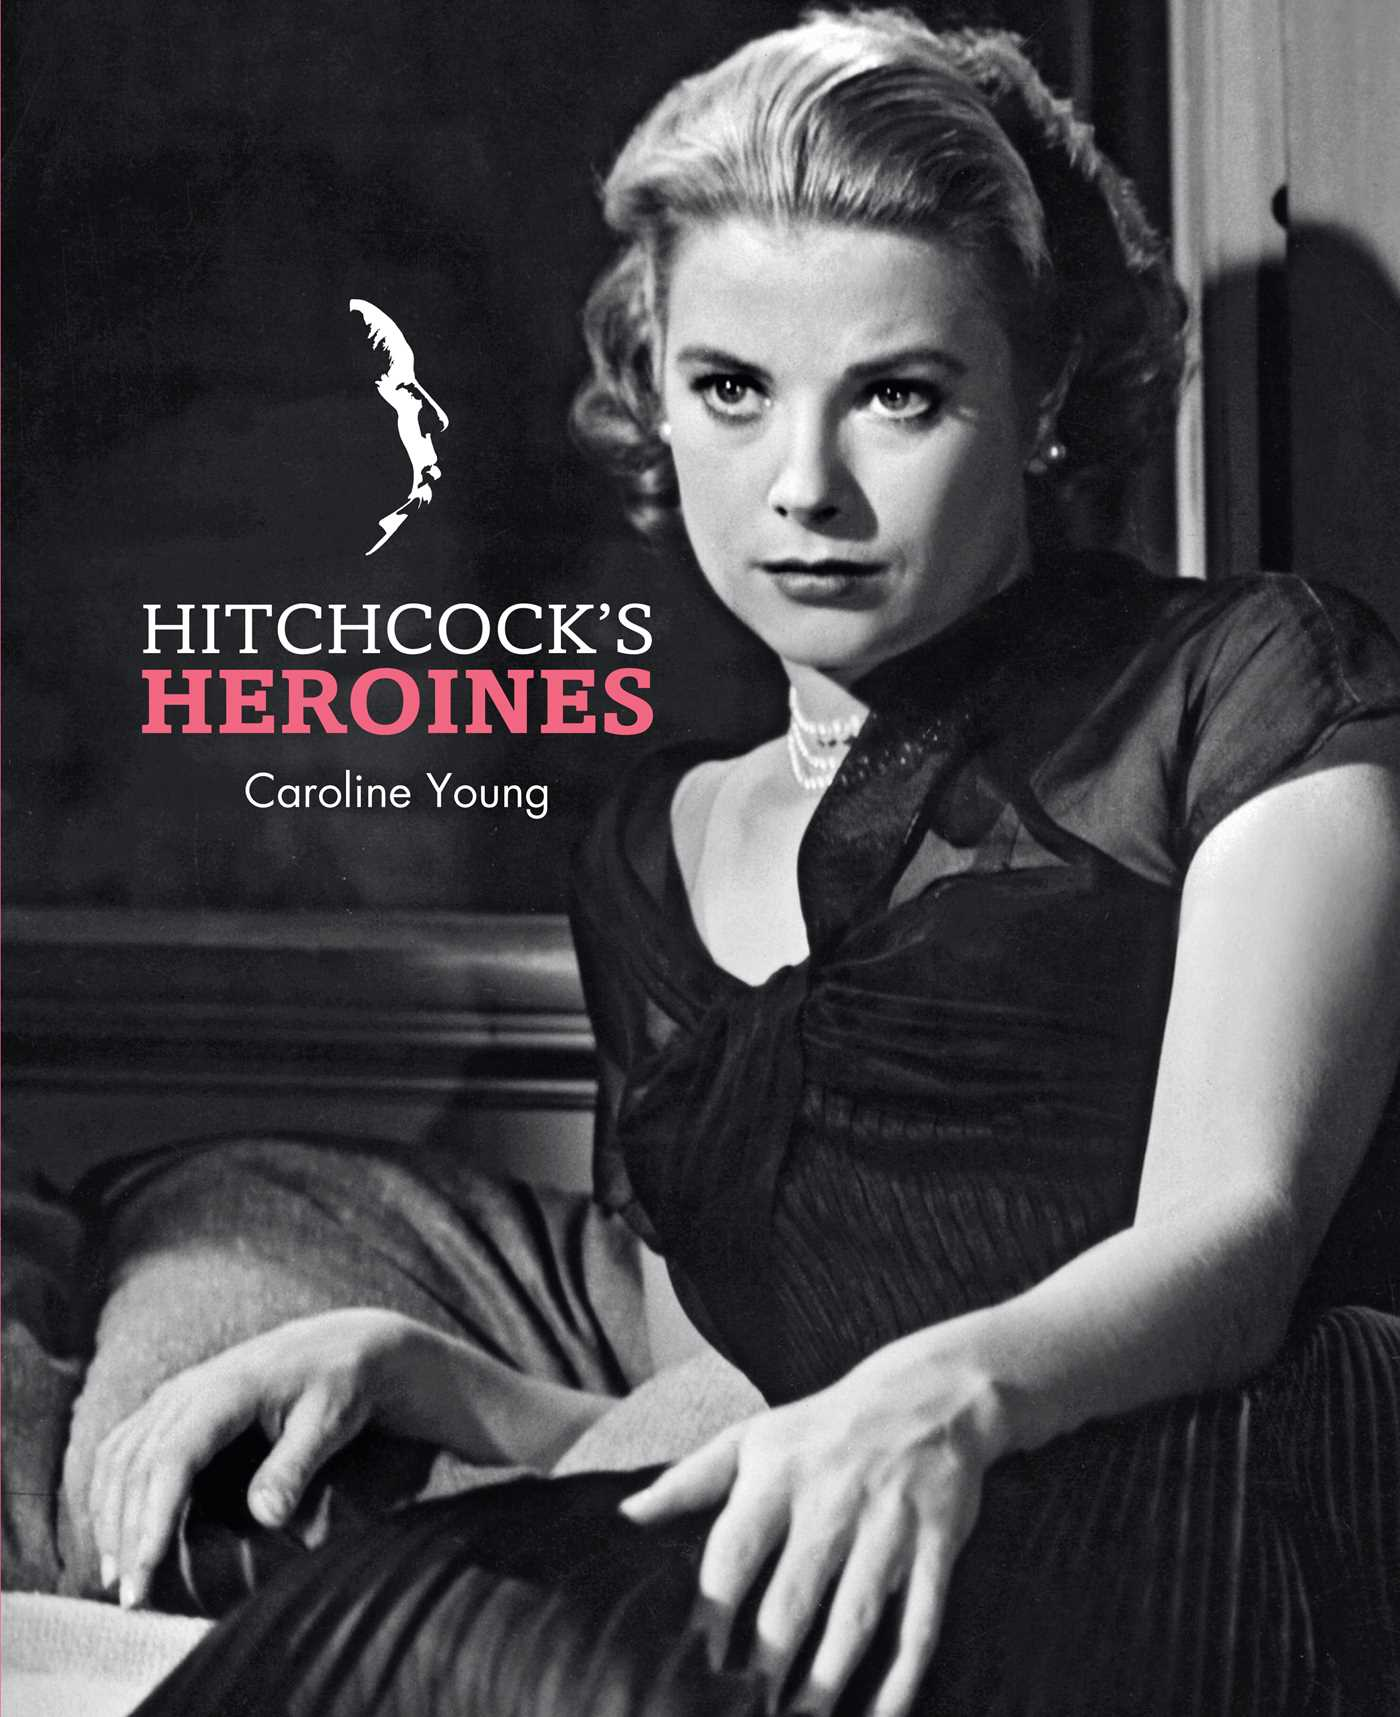 Be Your Own Hitchcock Heroine